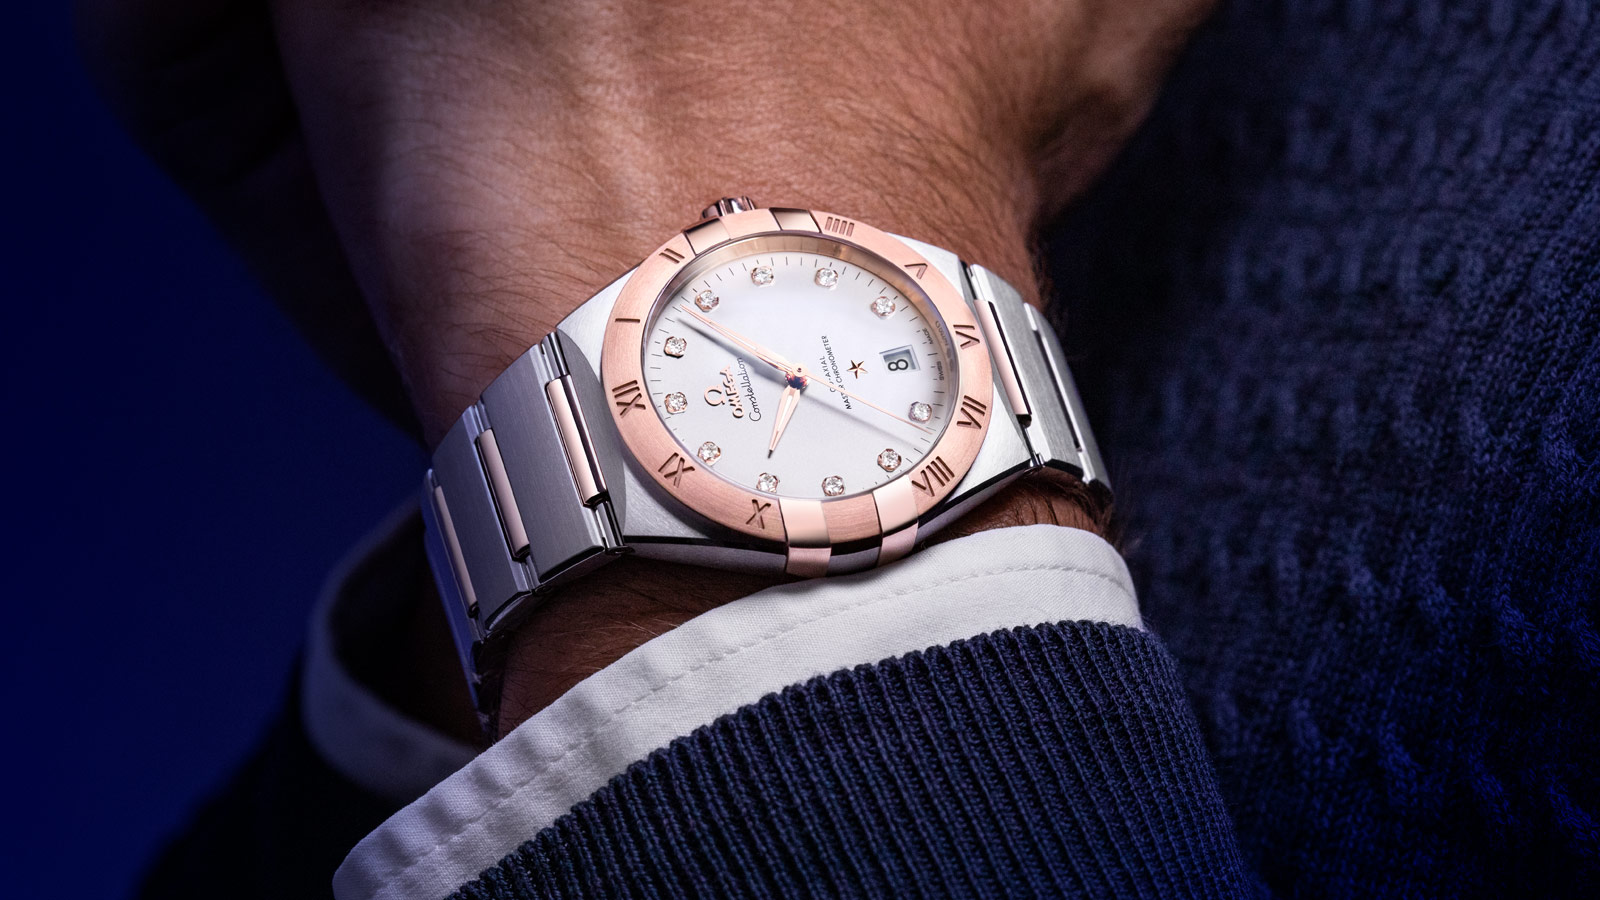 Constellation Constellation Constellation OMEGA Co‑Axial Master Chronometer 39 mm - 131.20.39.20.52.001 - View 1